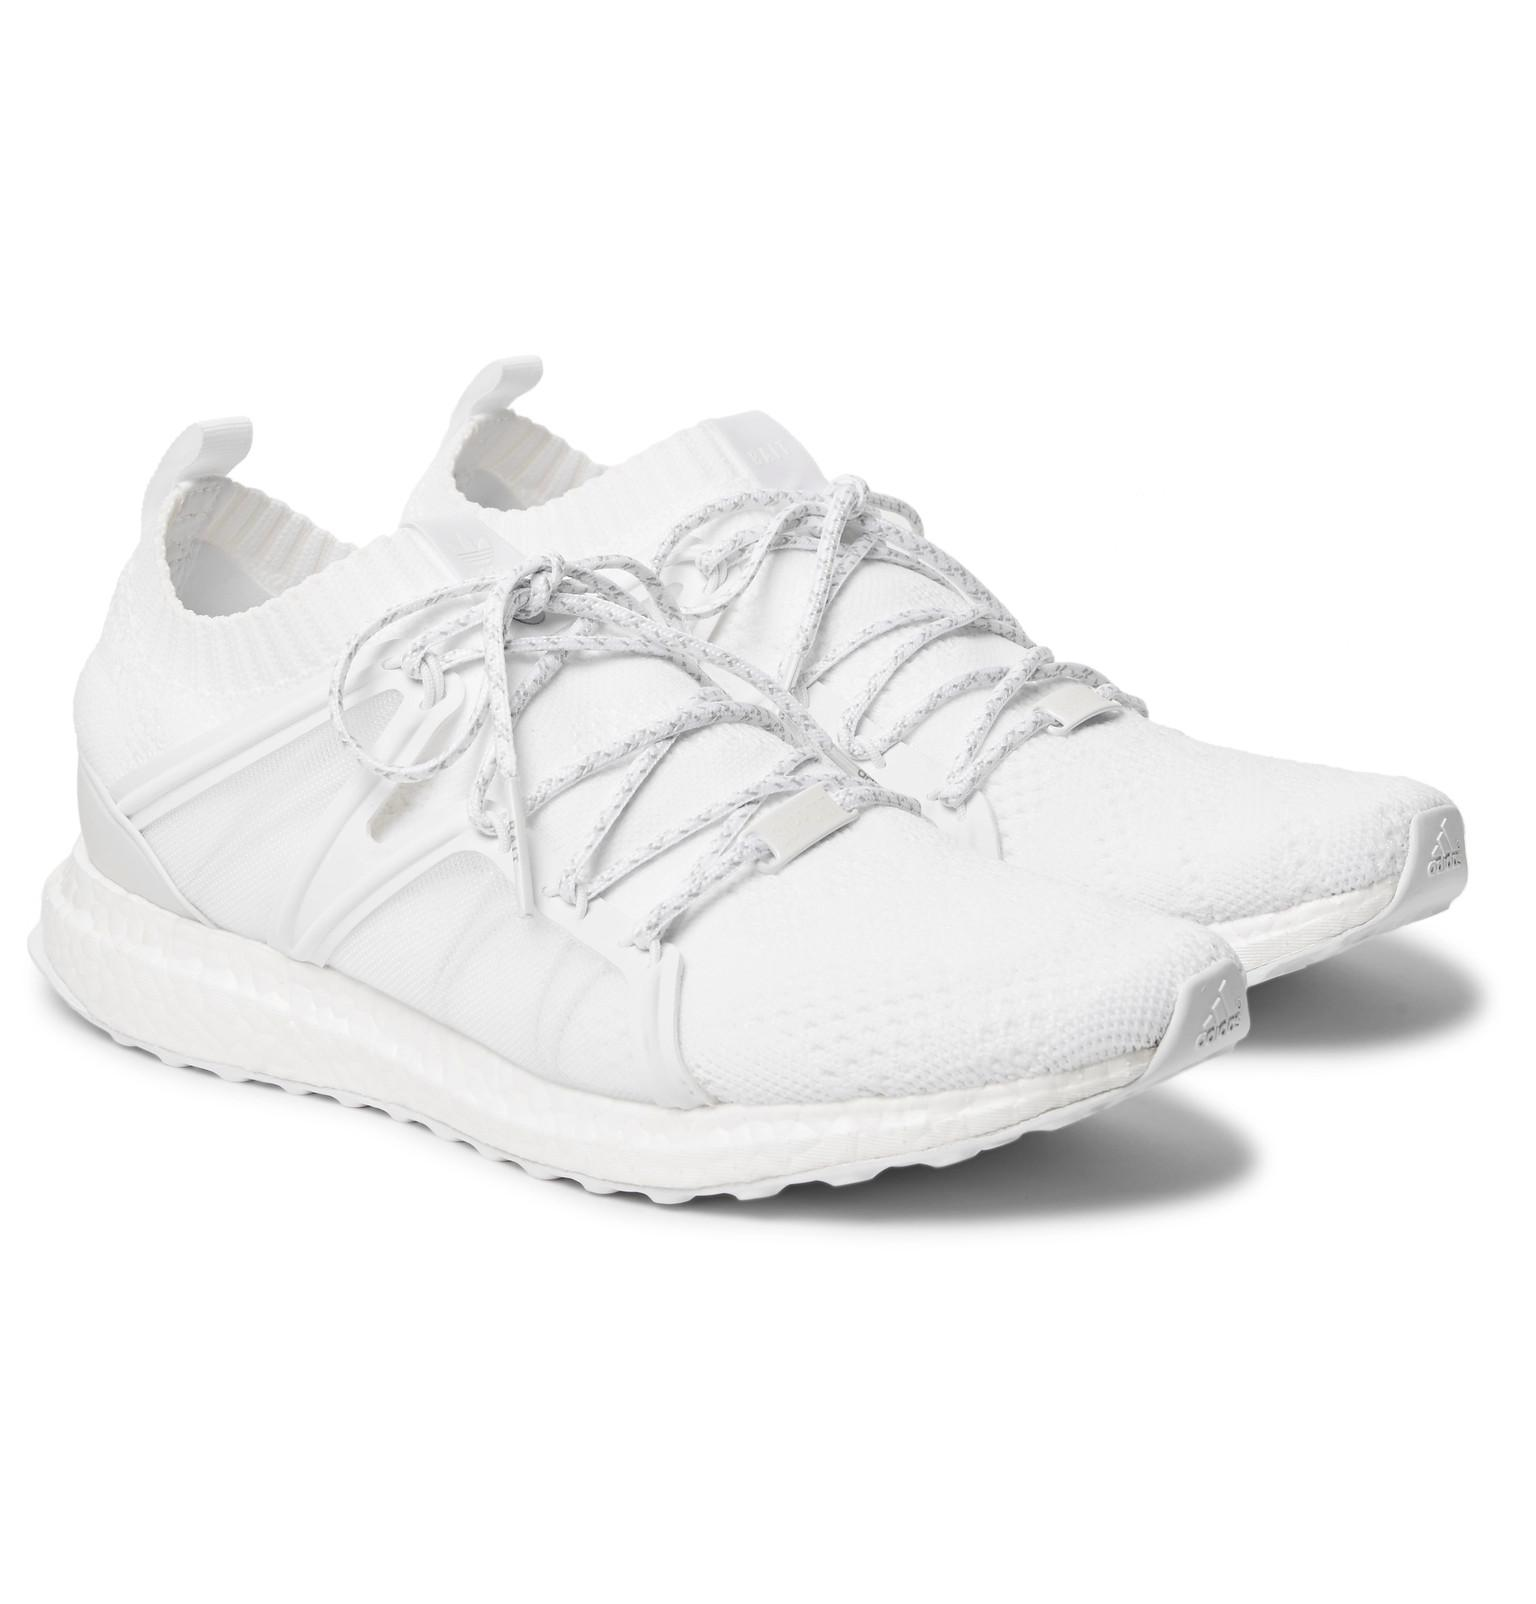 pretty nice f4ab9 44725 Lyst - adidas Originals + Bait Eqt Support 9316 Rubber-trimm